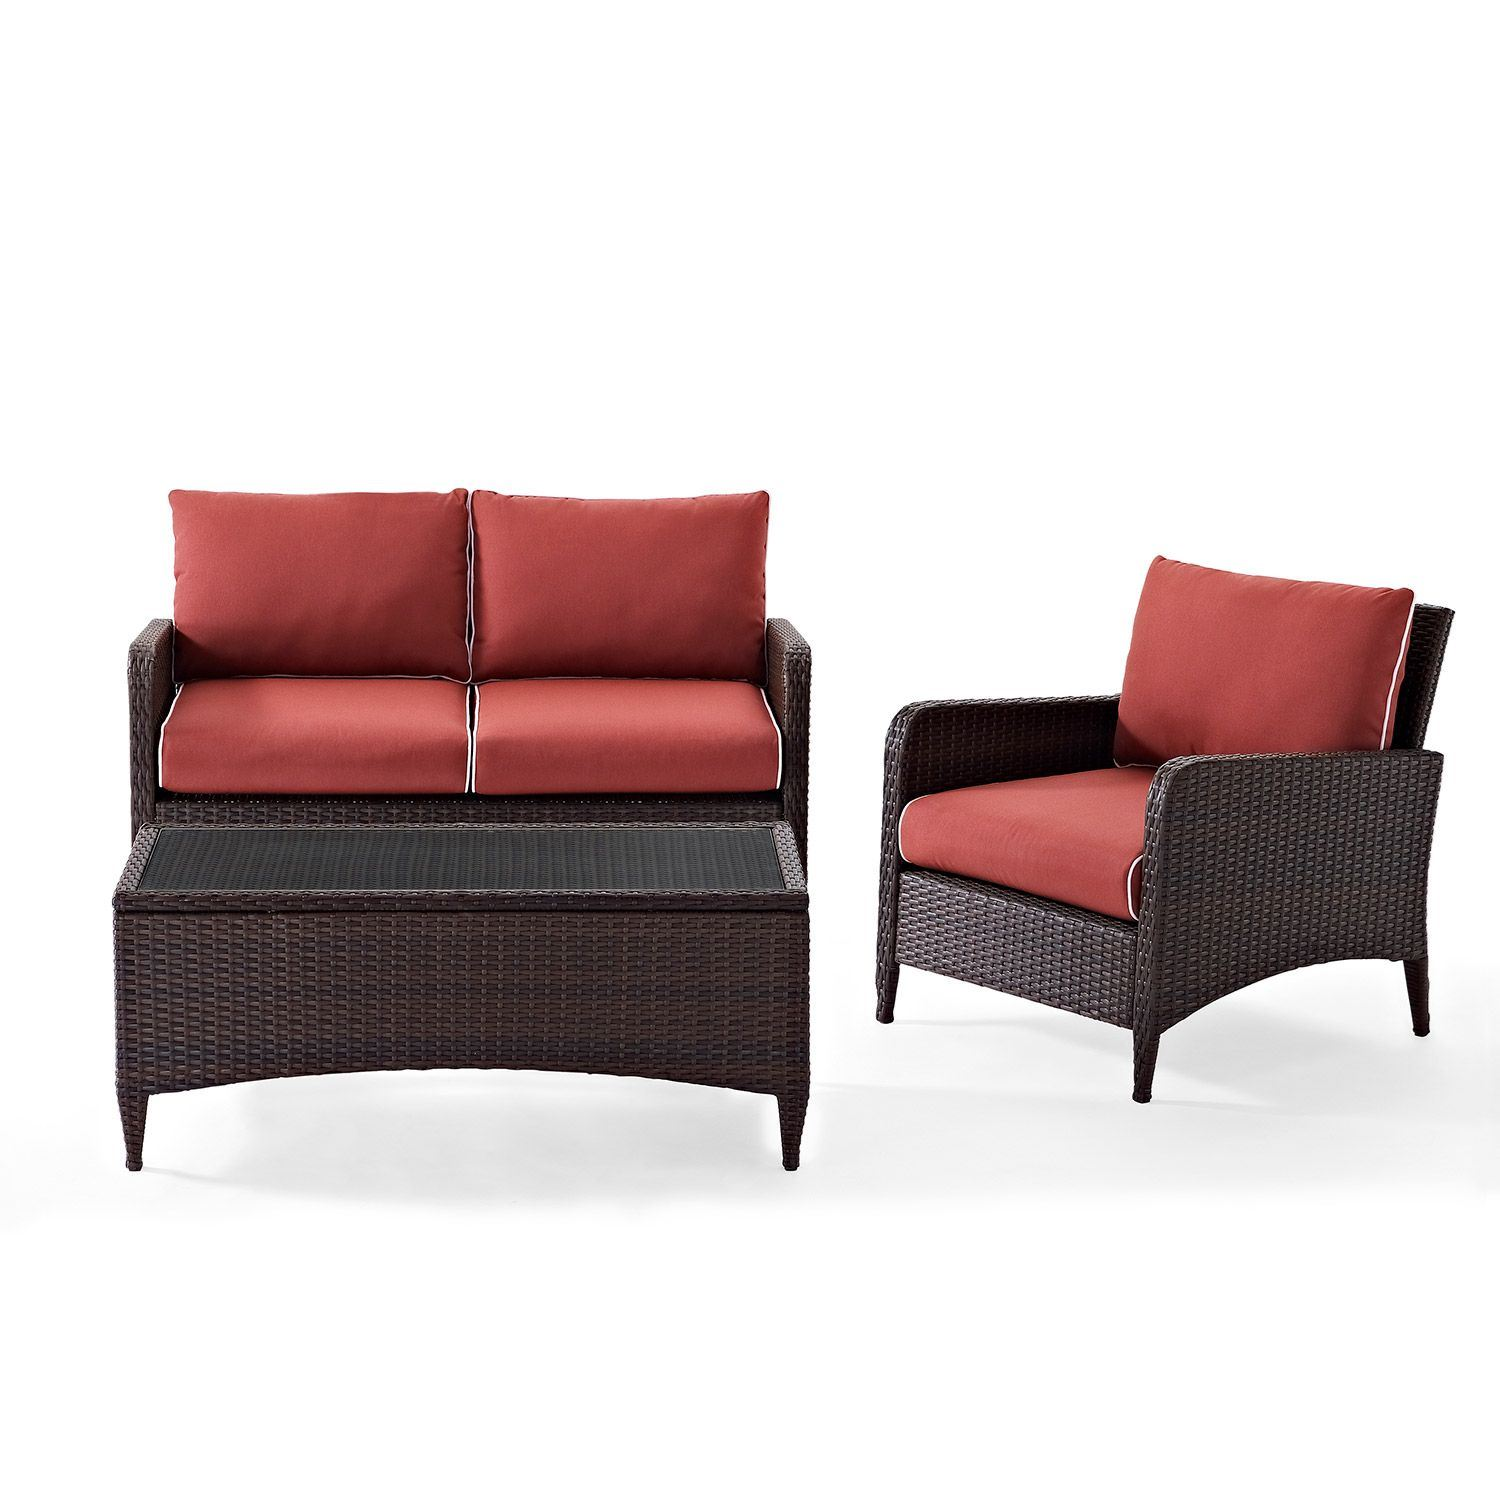 Picture of Kiawah 3-Piece Outdoor Seating Set, Brown *D